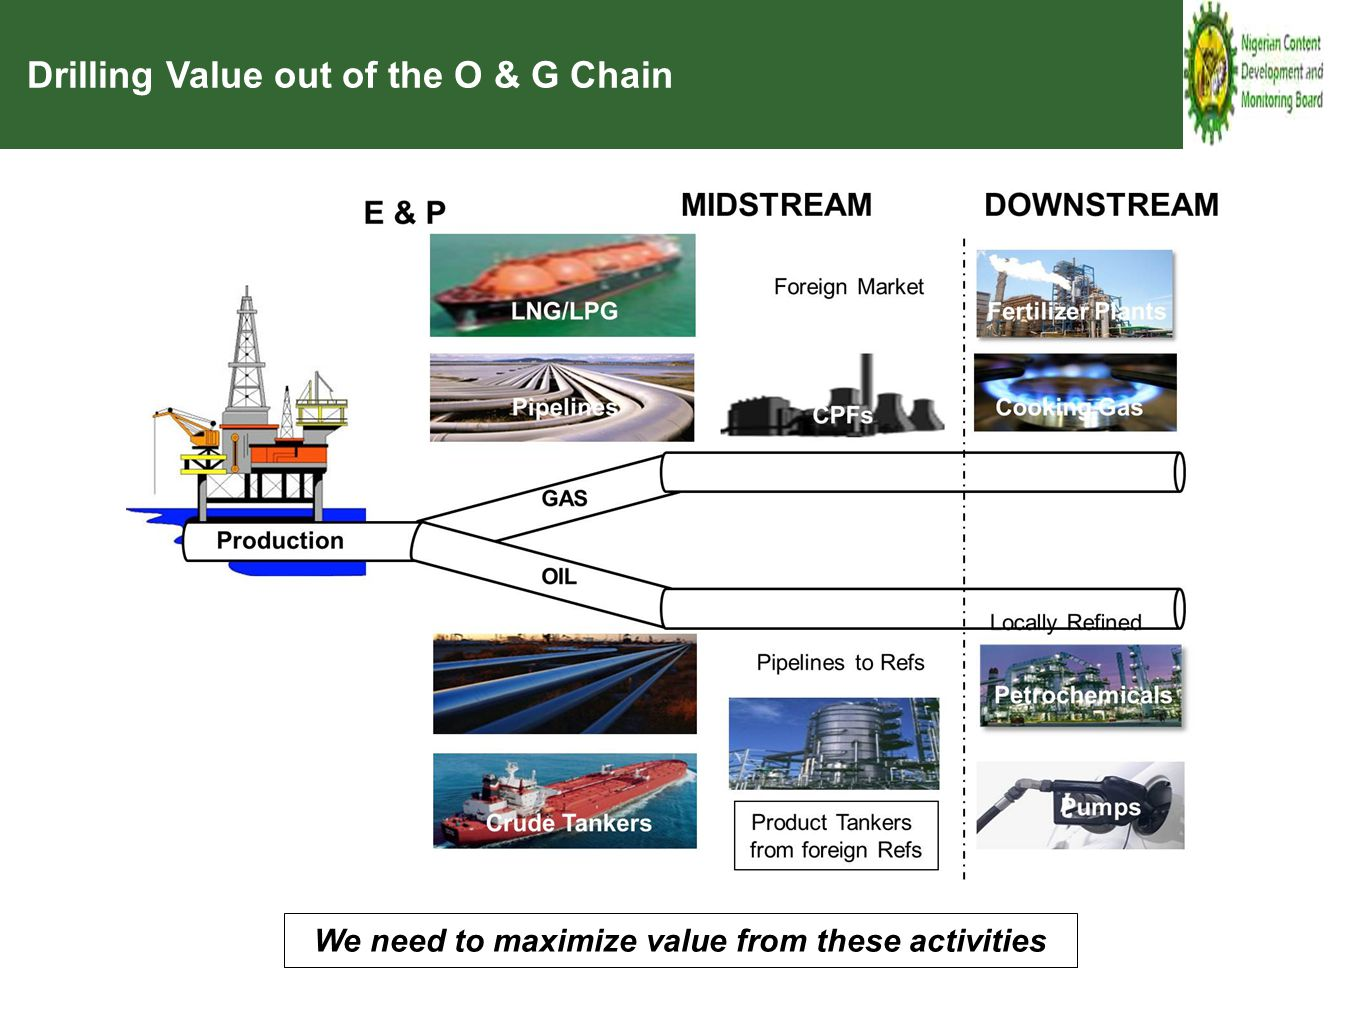 We need to maximize value from these activities Drilling Value out of the O & G Chain